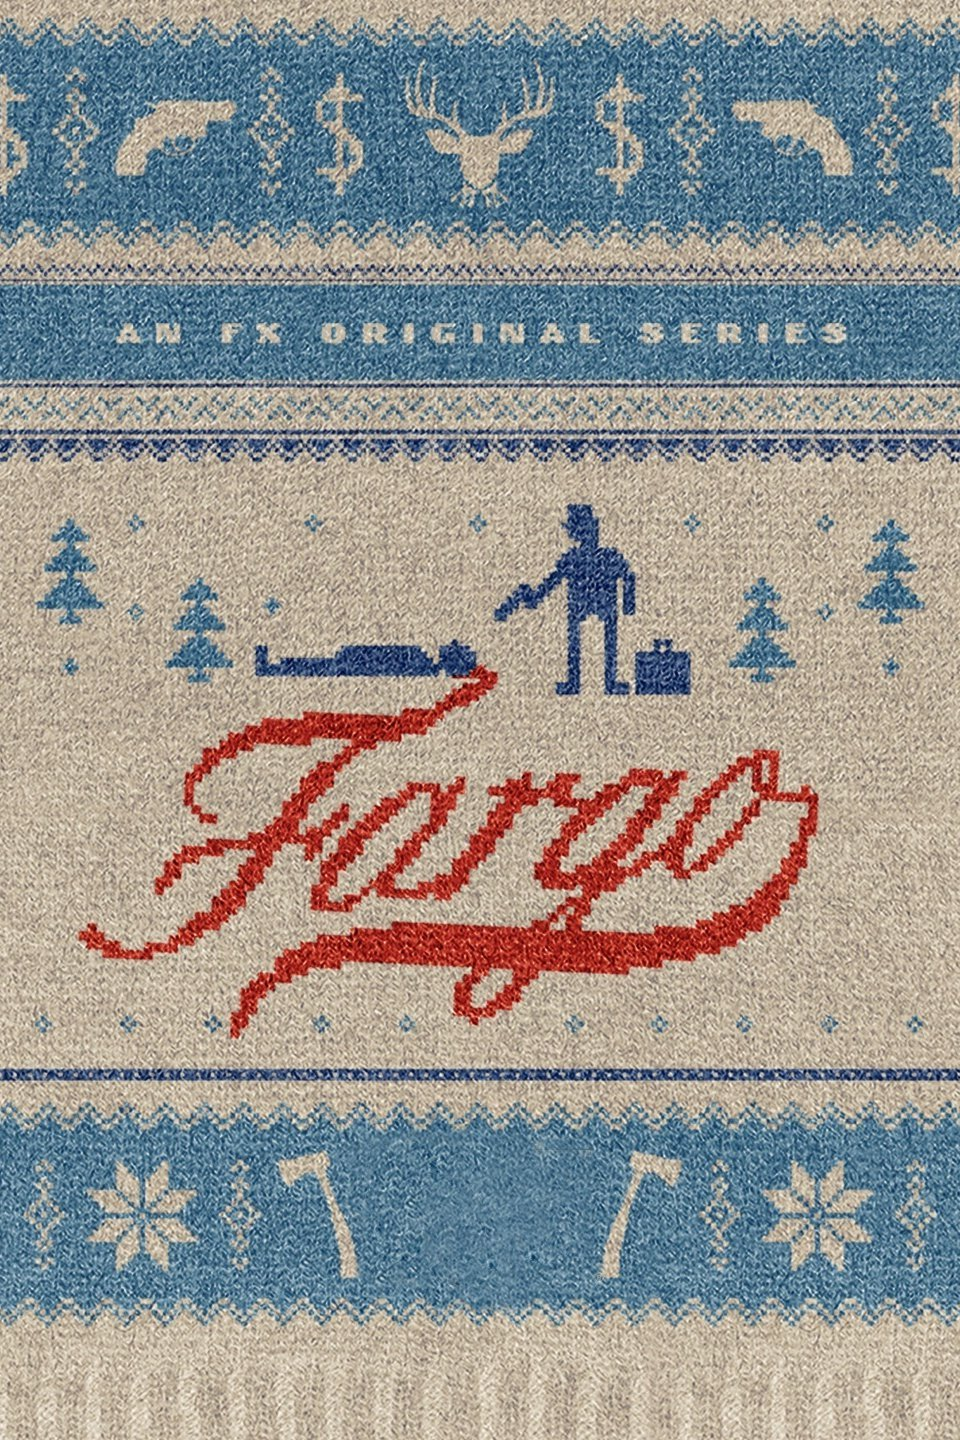 Fargo Staffel 2 Deutsch